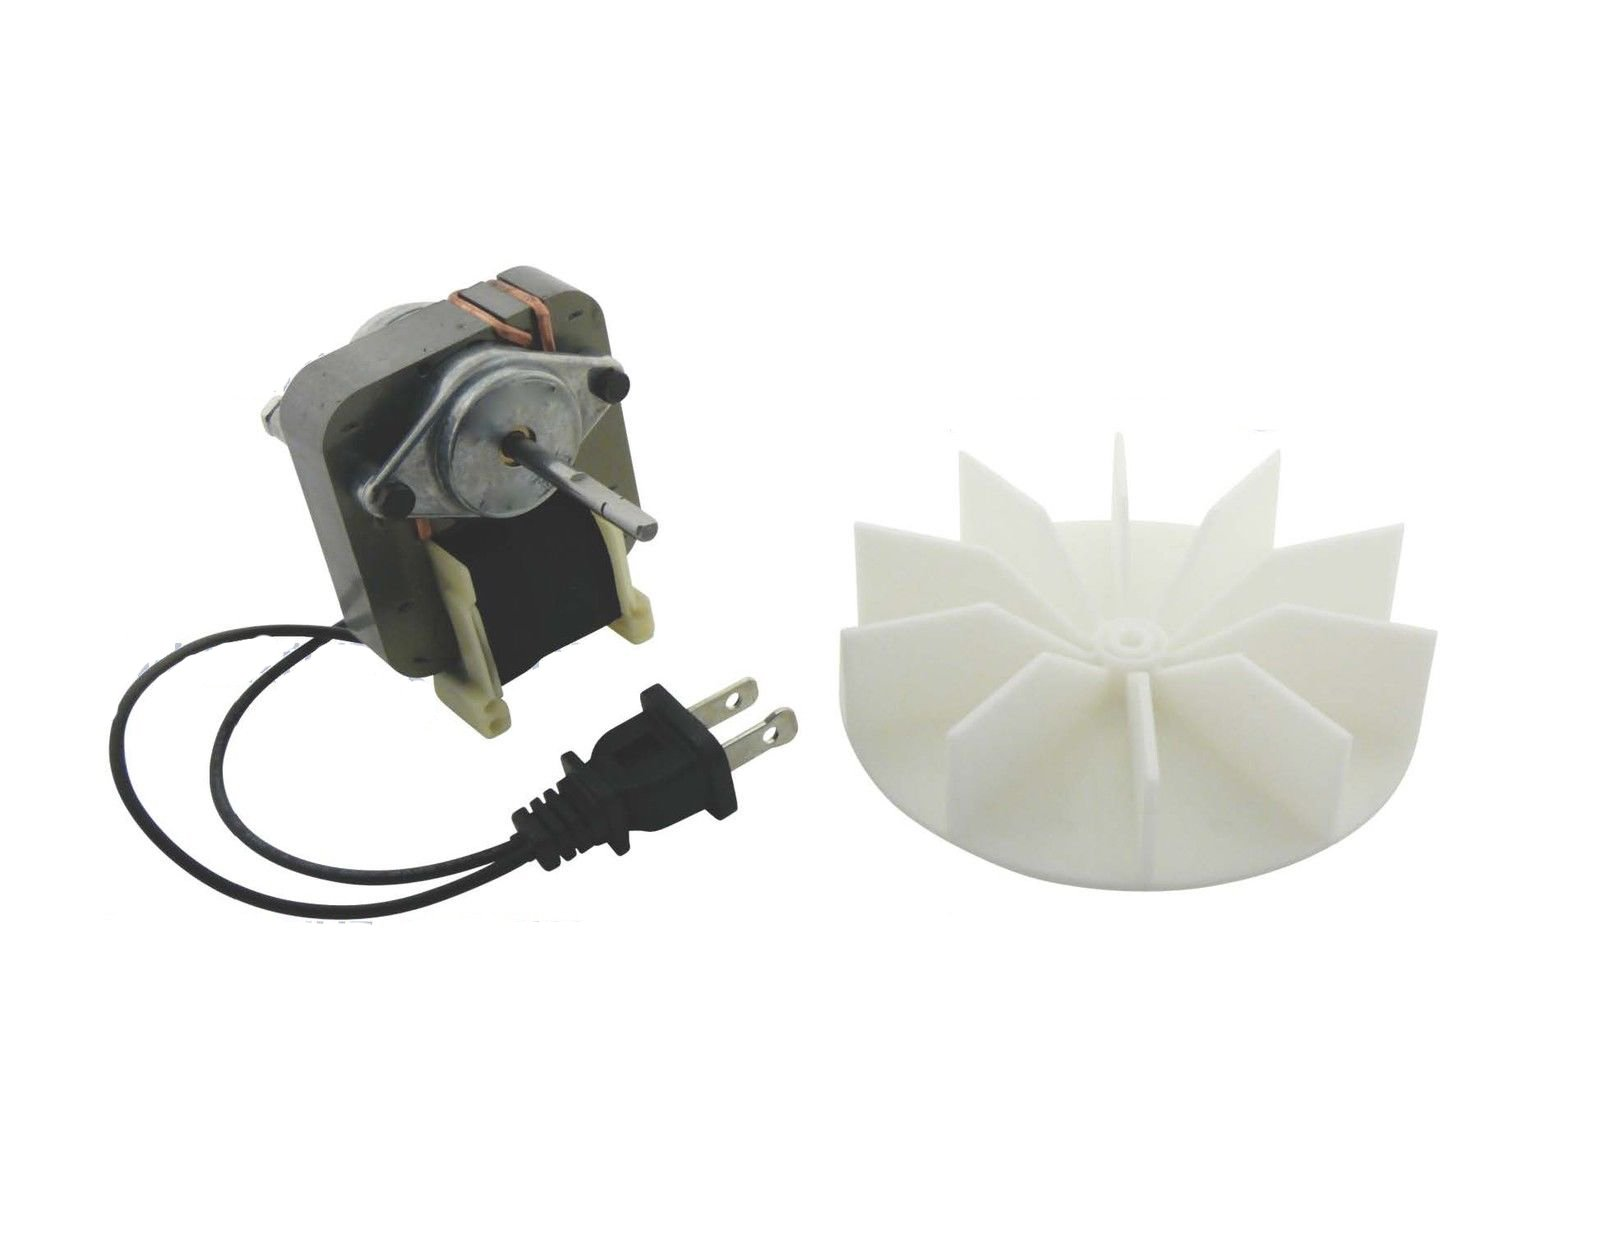 KHY Replacement Universal Bathroom Fan Electric Motor Kit with Fan 115 Volts C01575 for Nutone Fasco Broan Dayton